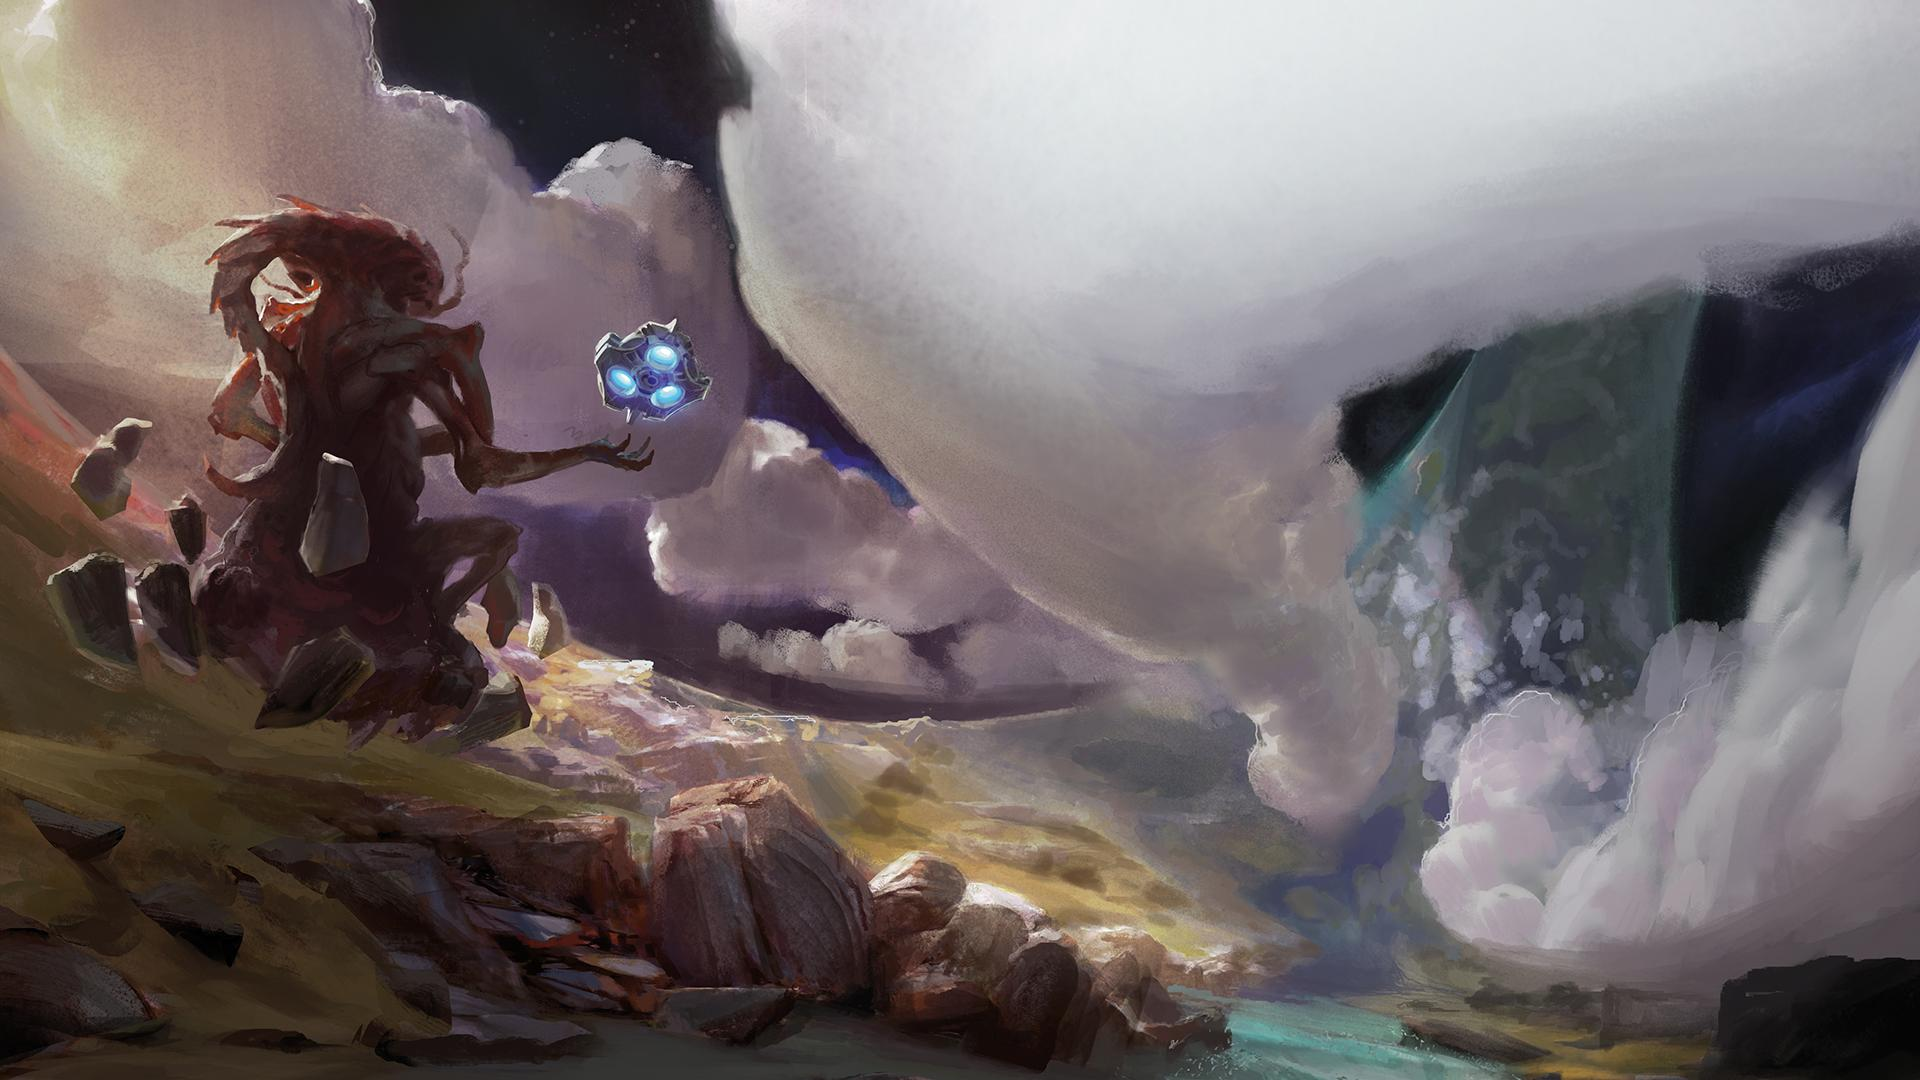 Mendicant Bias in Halo Mythos w/ primordial—possibly who killed Cortana?